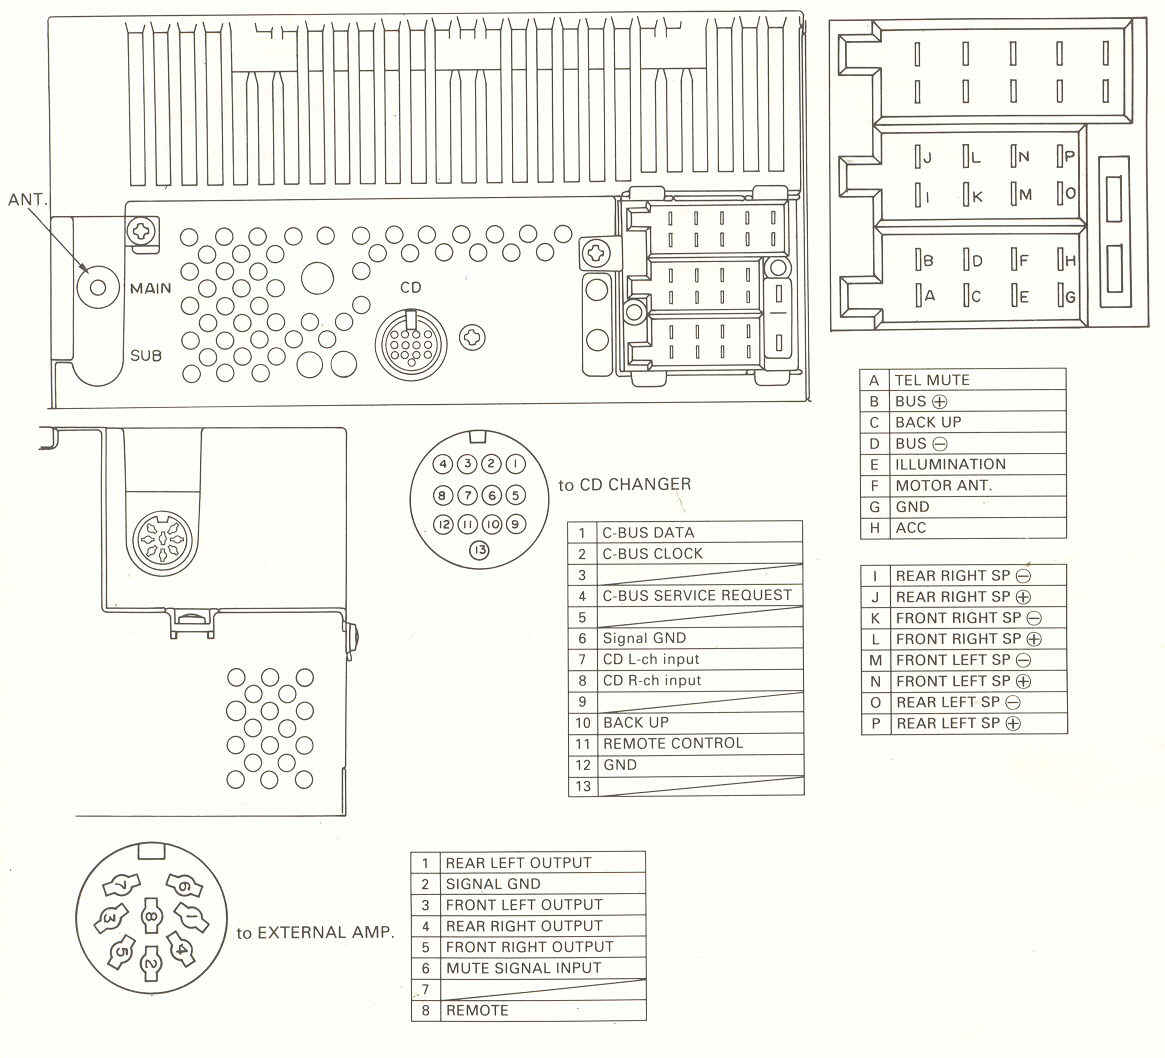 Wiring Diagram Saab 9 3 2007 Library 89 Omc 4 Radio Another Blog About U2022 2005